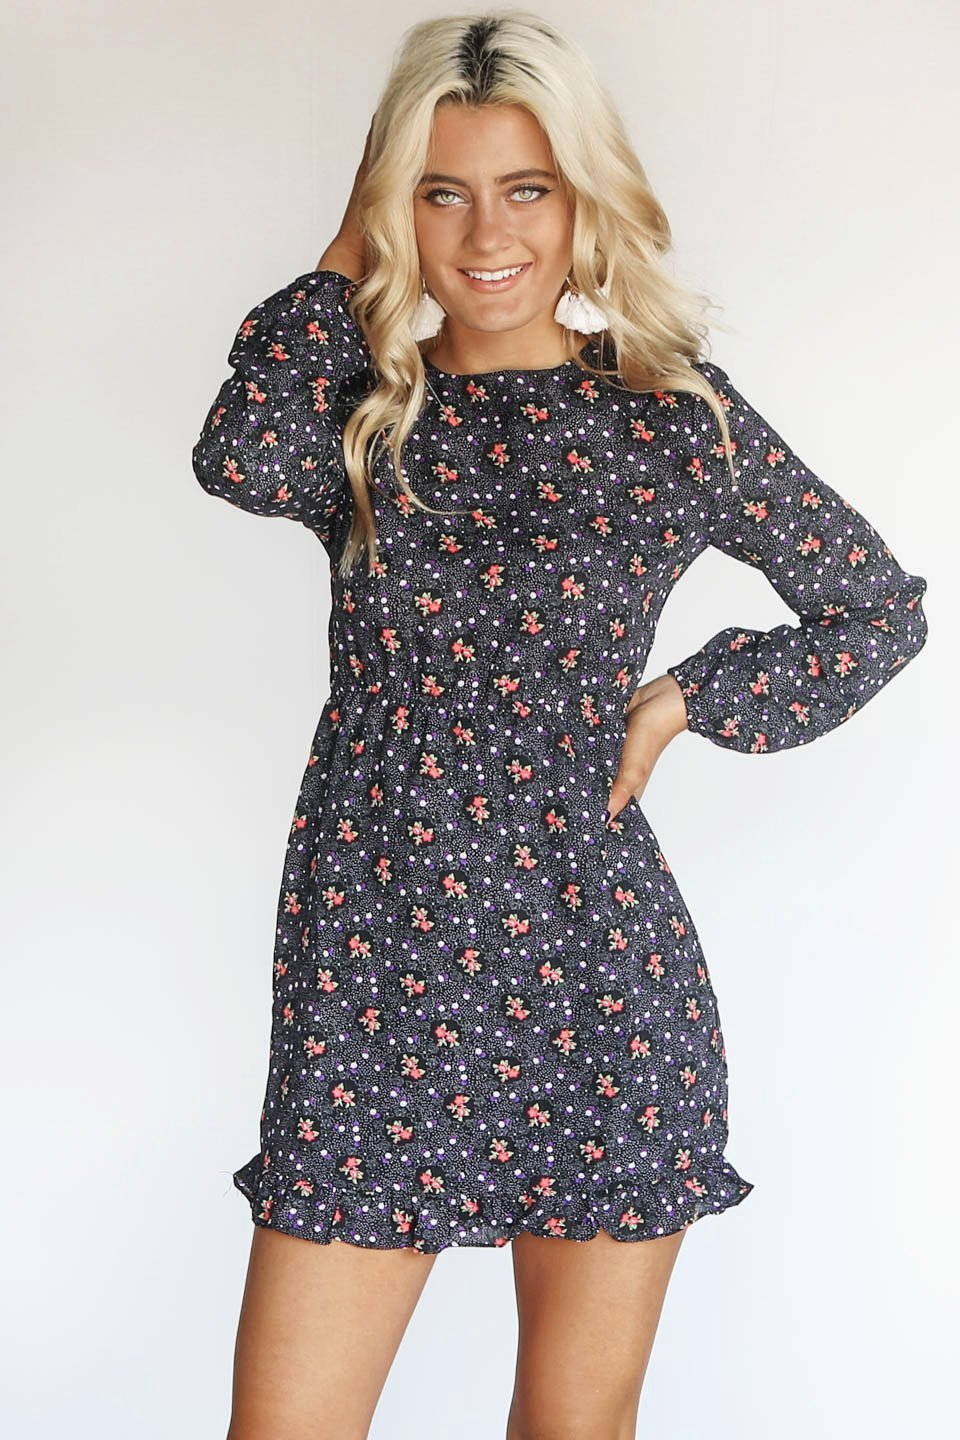 More Adventures Black Long Sleeve Floral Dress